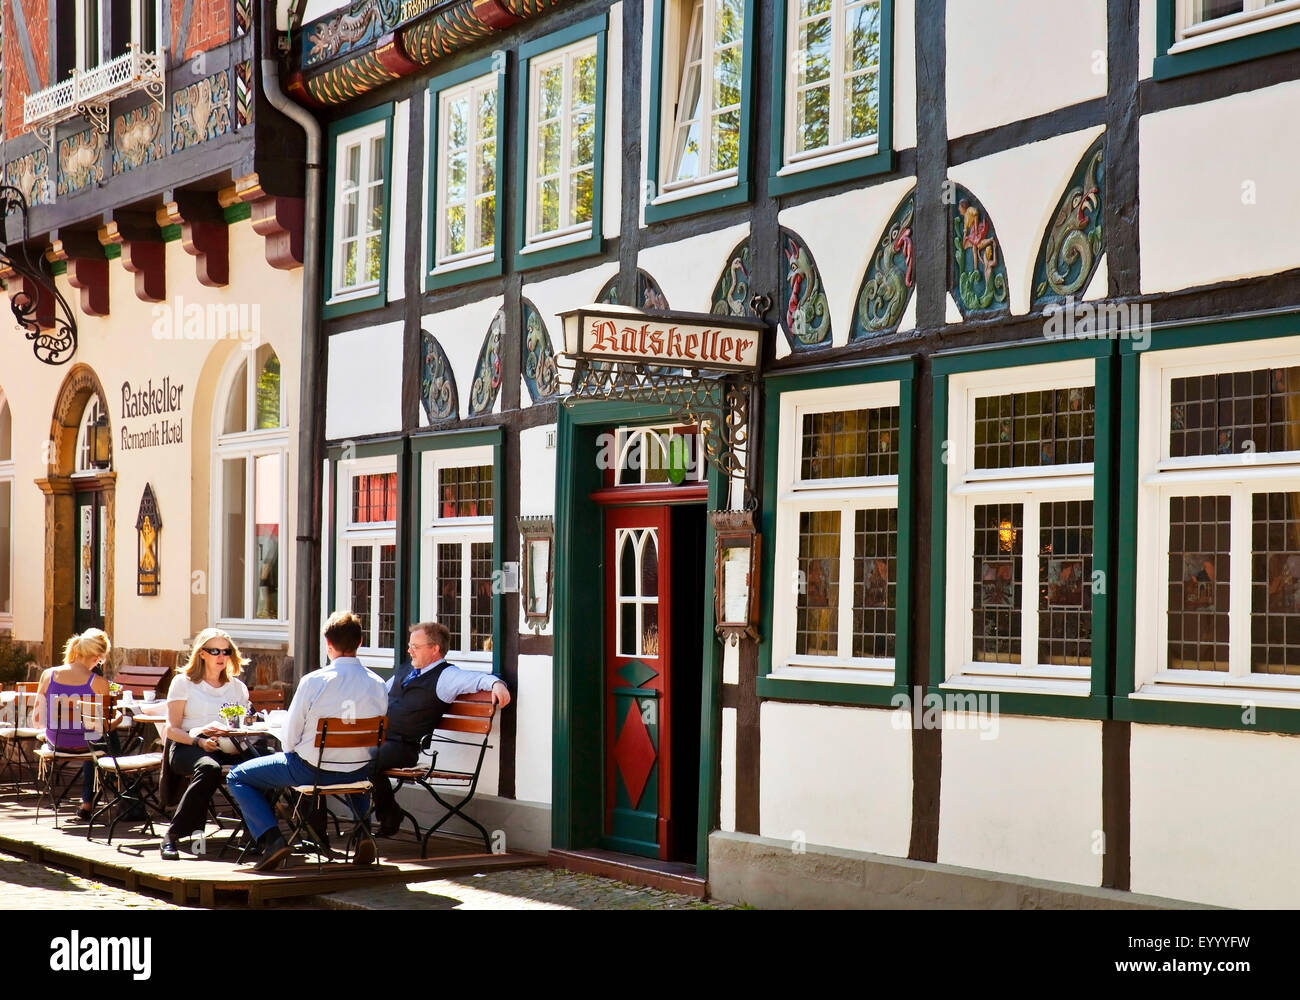 people in a sidewald cafe in the historic old town of Wiedenbrueck, Germany, North Rhine-Westphalia, East Westphalia, - Stock Image